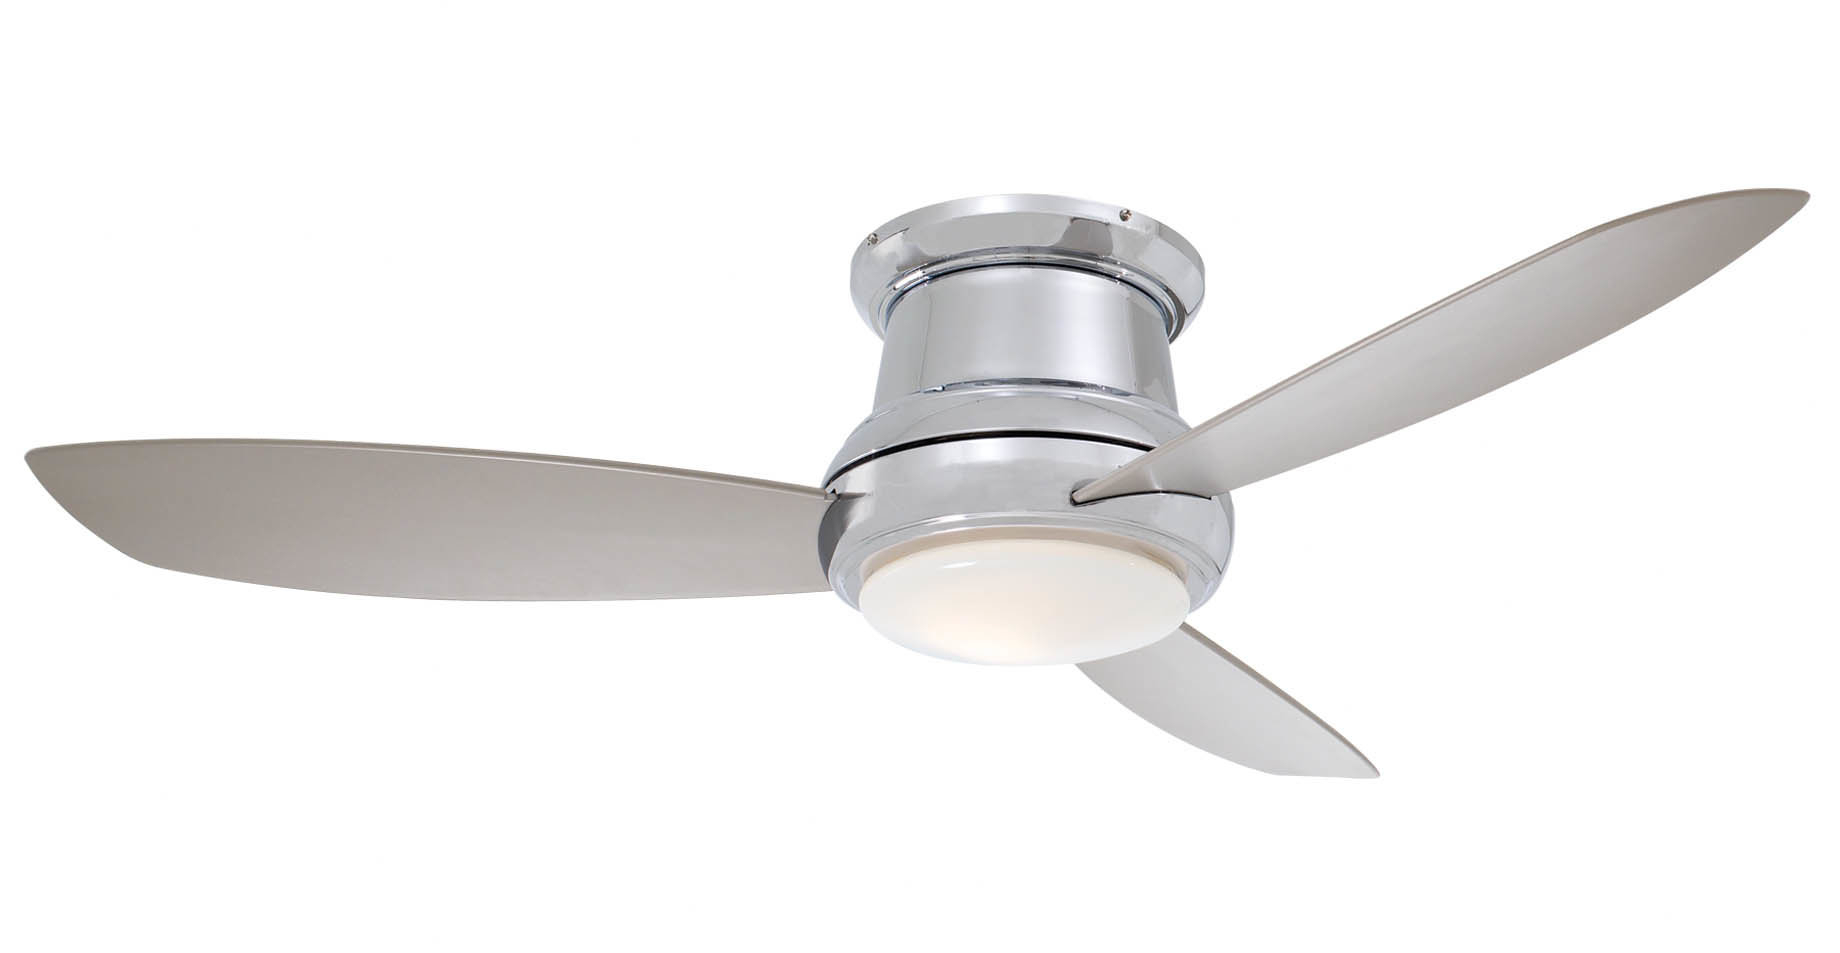 """Trendy 44"""" Concept Ii 3 Blade Led Ceiling Fan Intended For Concept Ii 3 Blade Led Ceiling Fans With Remote (View 18 of 20)"""